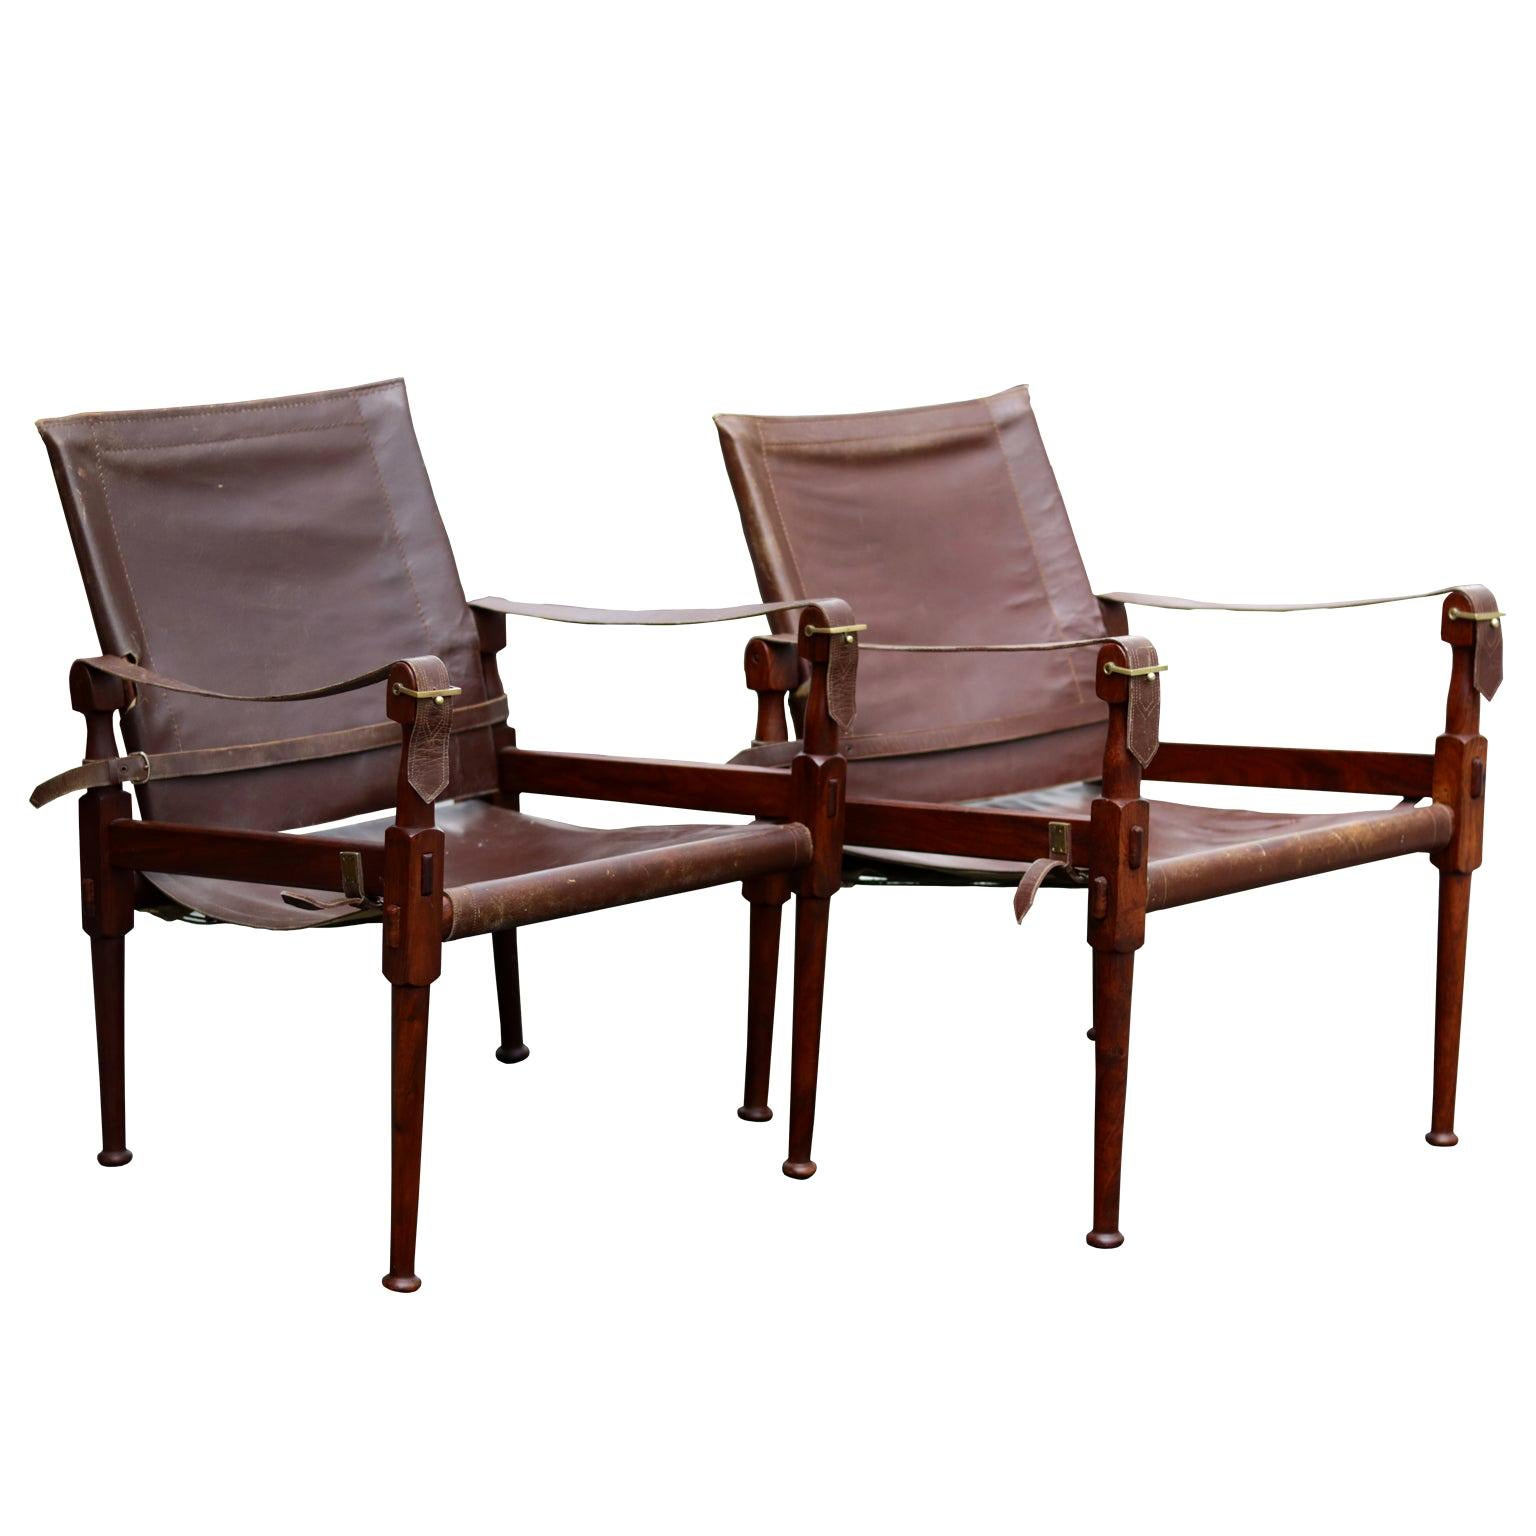 Stupendous Antique And Vintage Club Chairs 3 087 For Sale At 1Stdibs Gmtry Best Dining Table And Chair Ideas Images Gmtryco